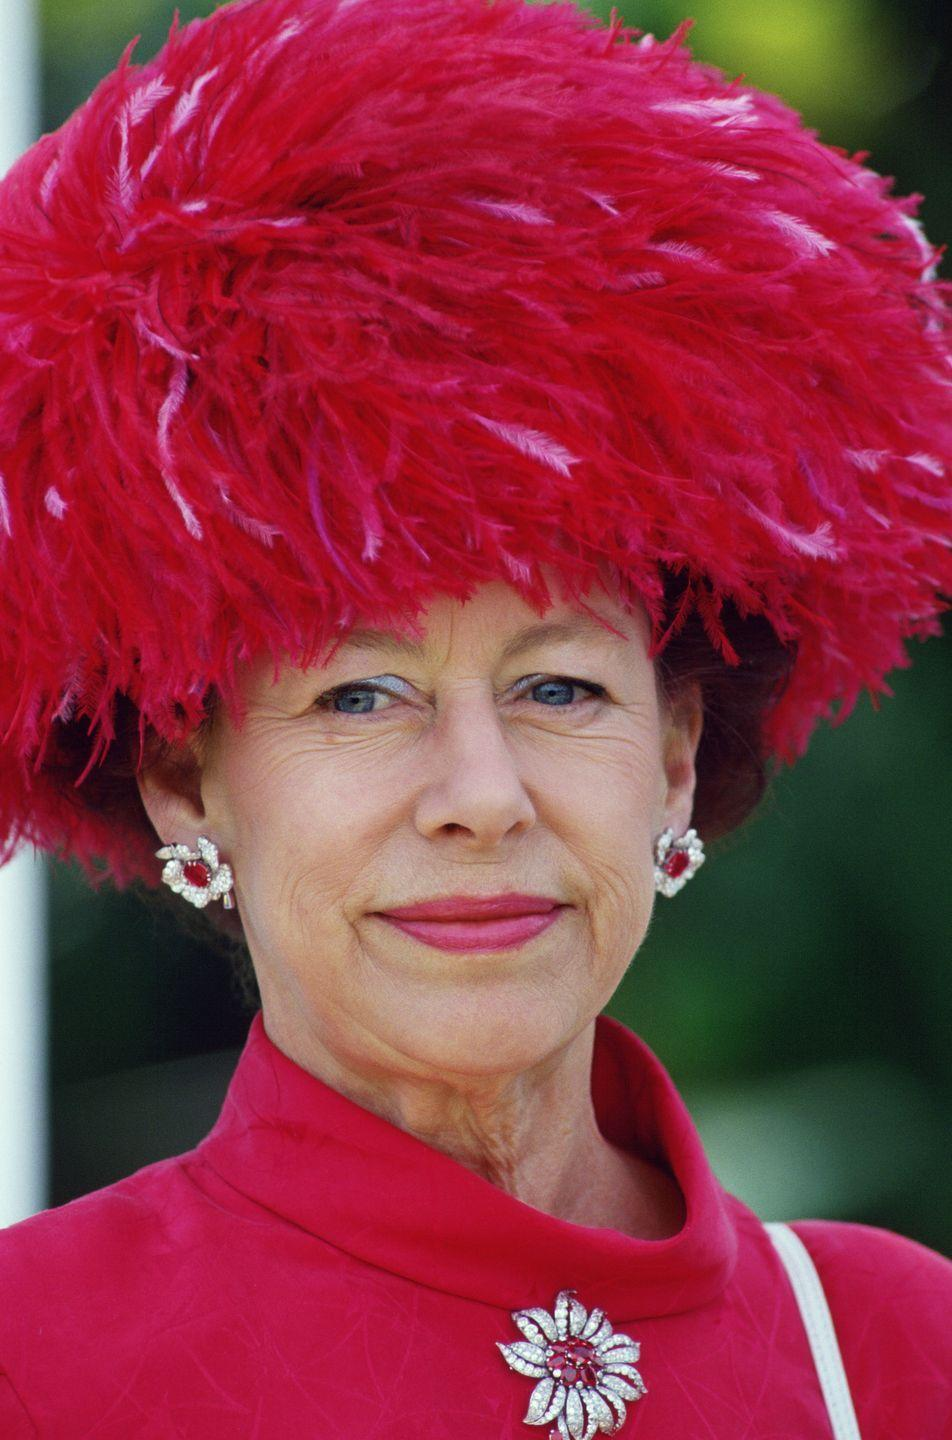 <p>Queen Elizabeth isn't the only royal who could do monochrome—her sister, Princess Margaret was equally deft as she showed with this eye-catching look in which she paired a pink feathered hat, with matching suit, earrings, brooch, and lipstick.</p>